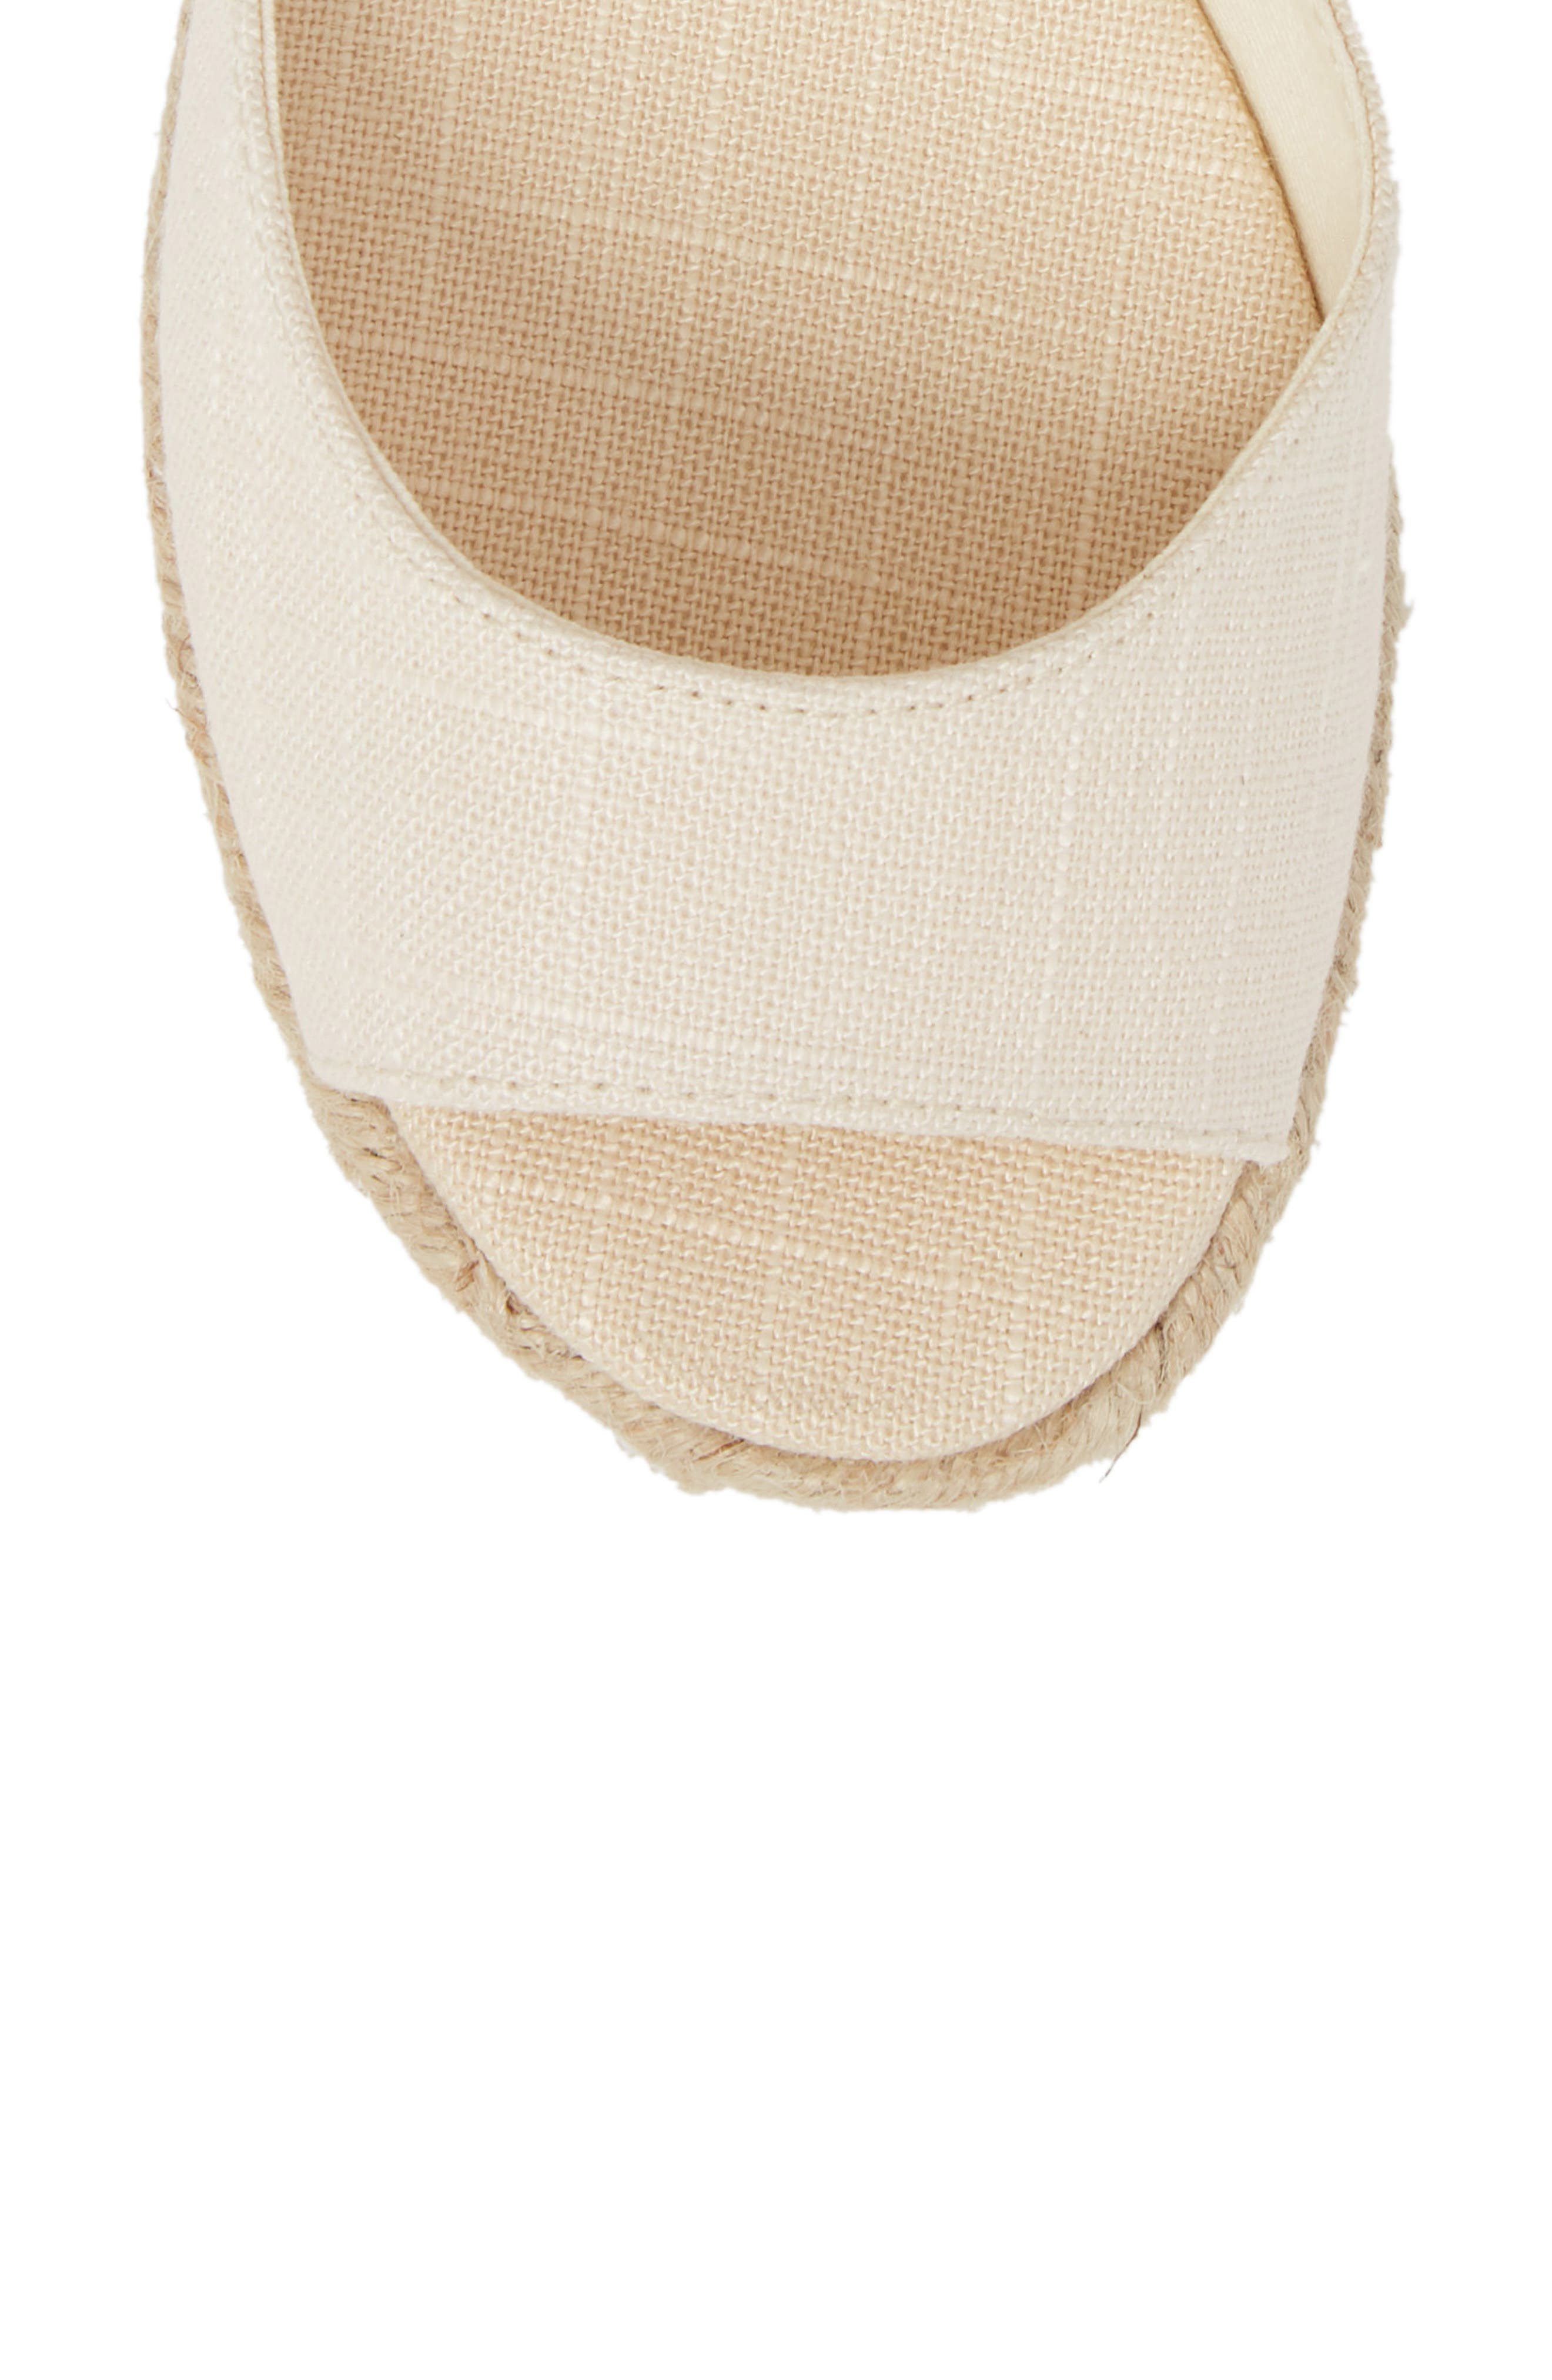 SOLUDOS, Espadrille Platform Sandal, Alternate thumbnail 5, color, BLUSH FABRIC